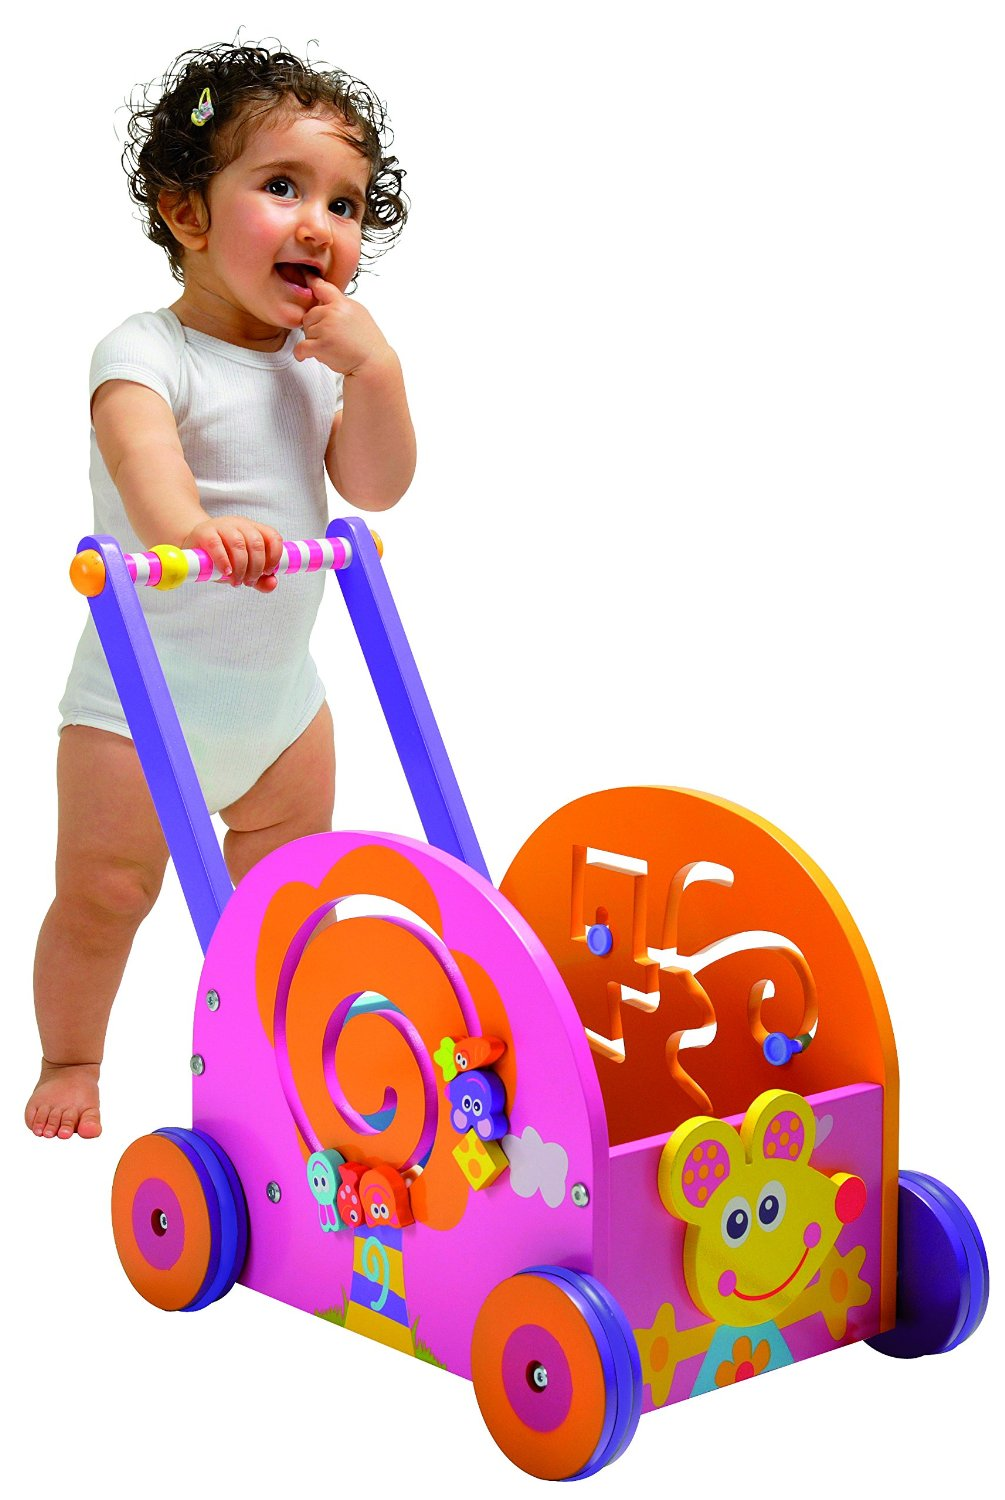 Toddler Toys Physical Toys : Push toys to help baby toddlers walk independently